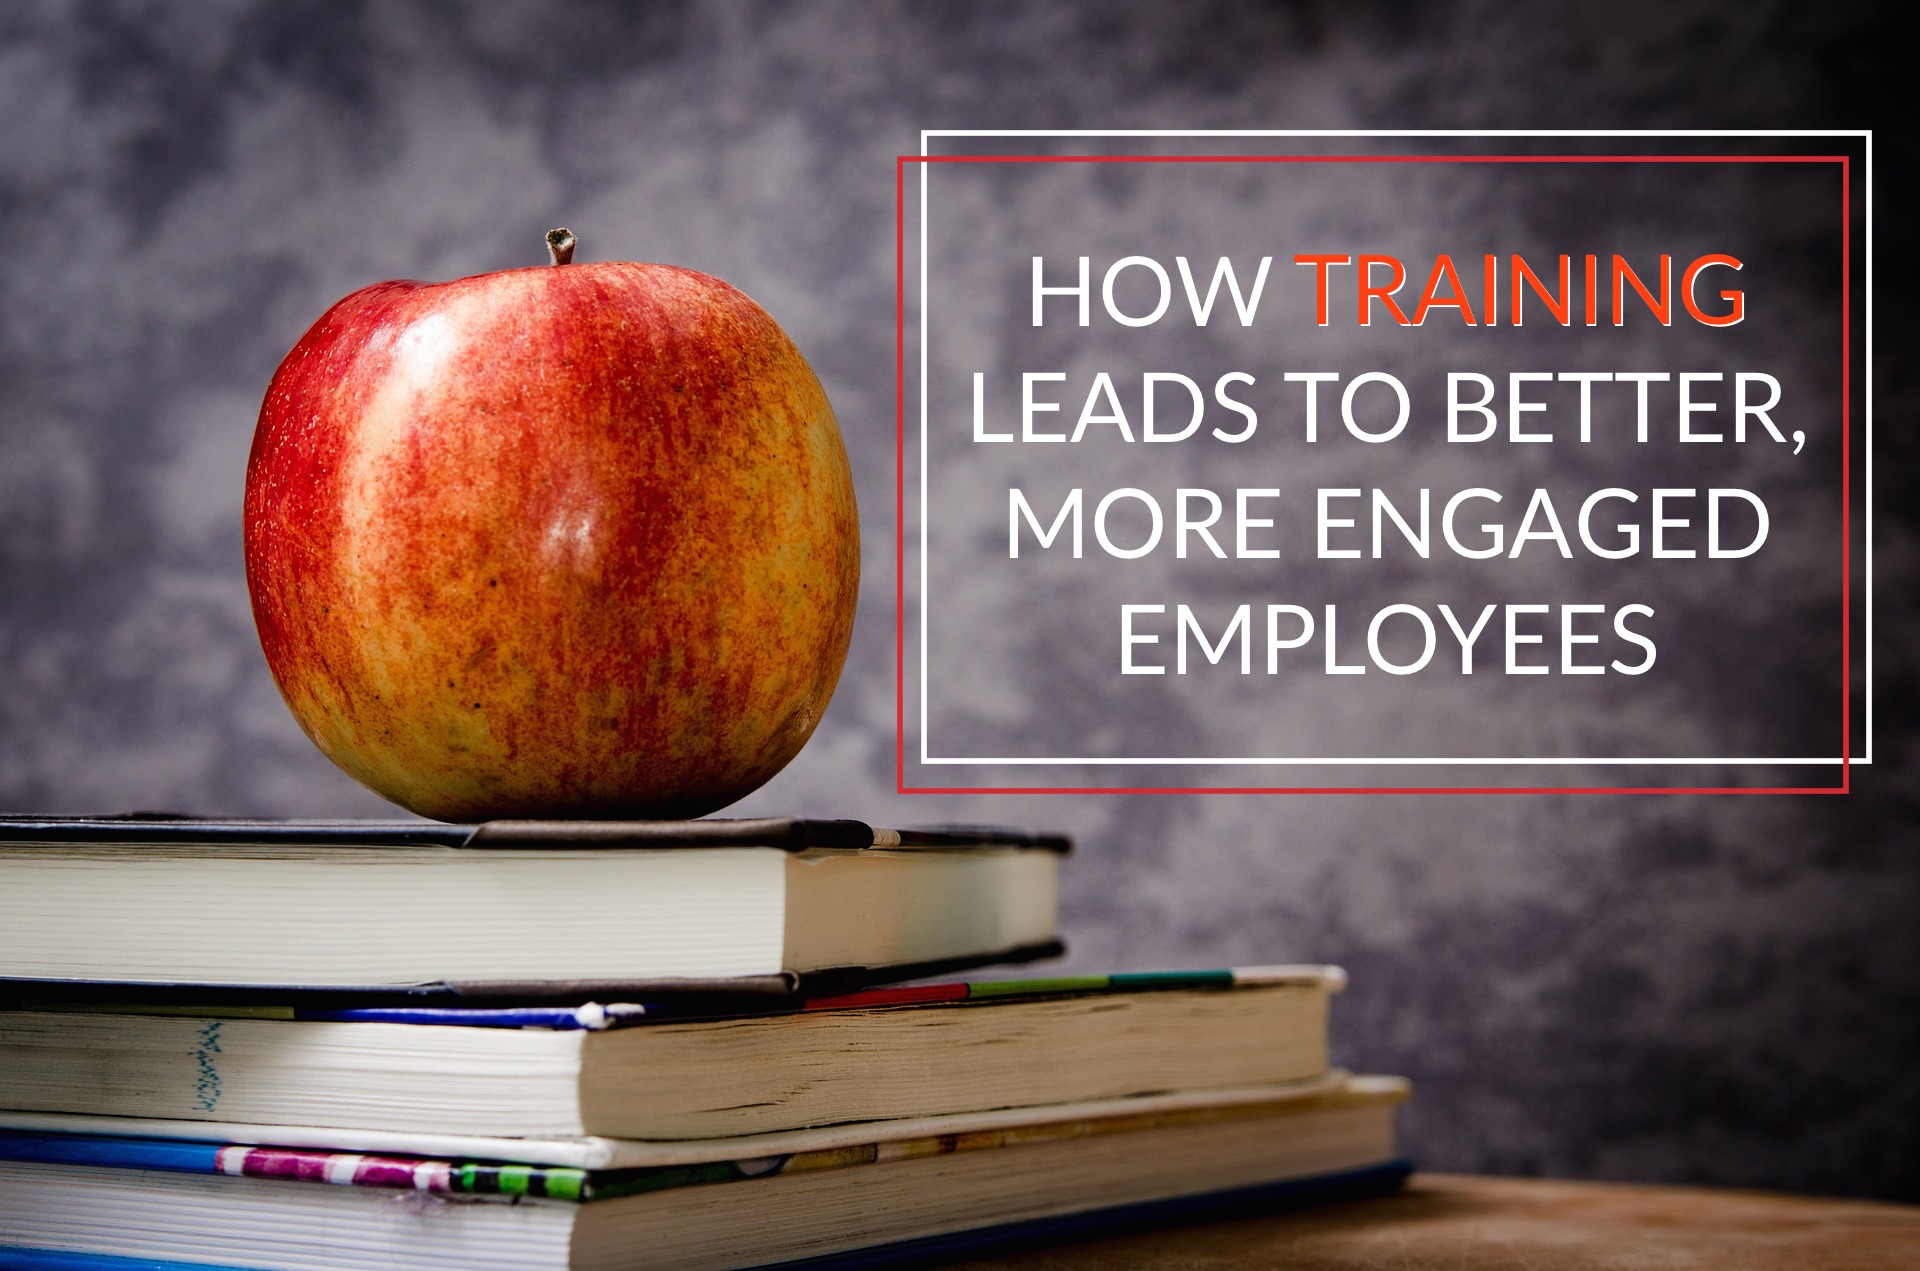 how training leads to better more engaged employees catmedia training services how training leads to better employees